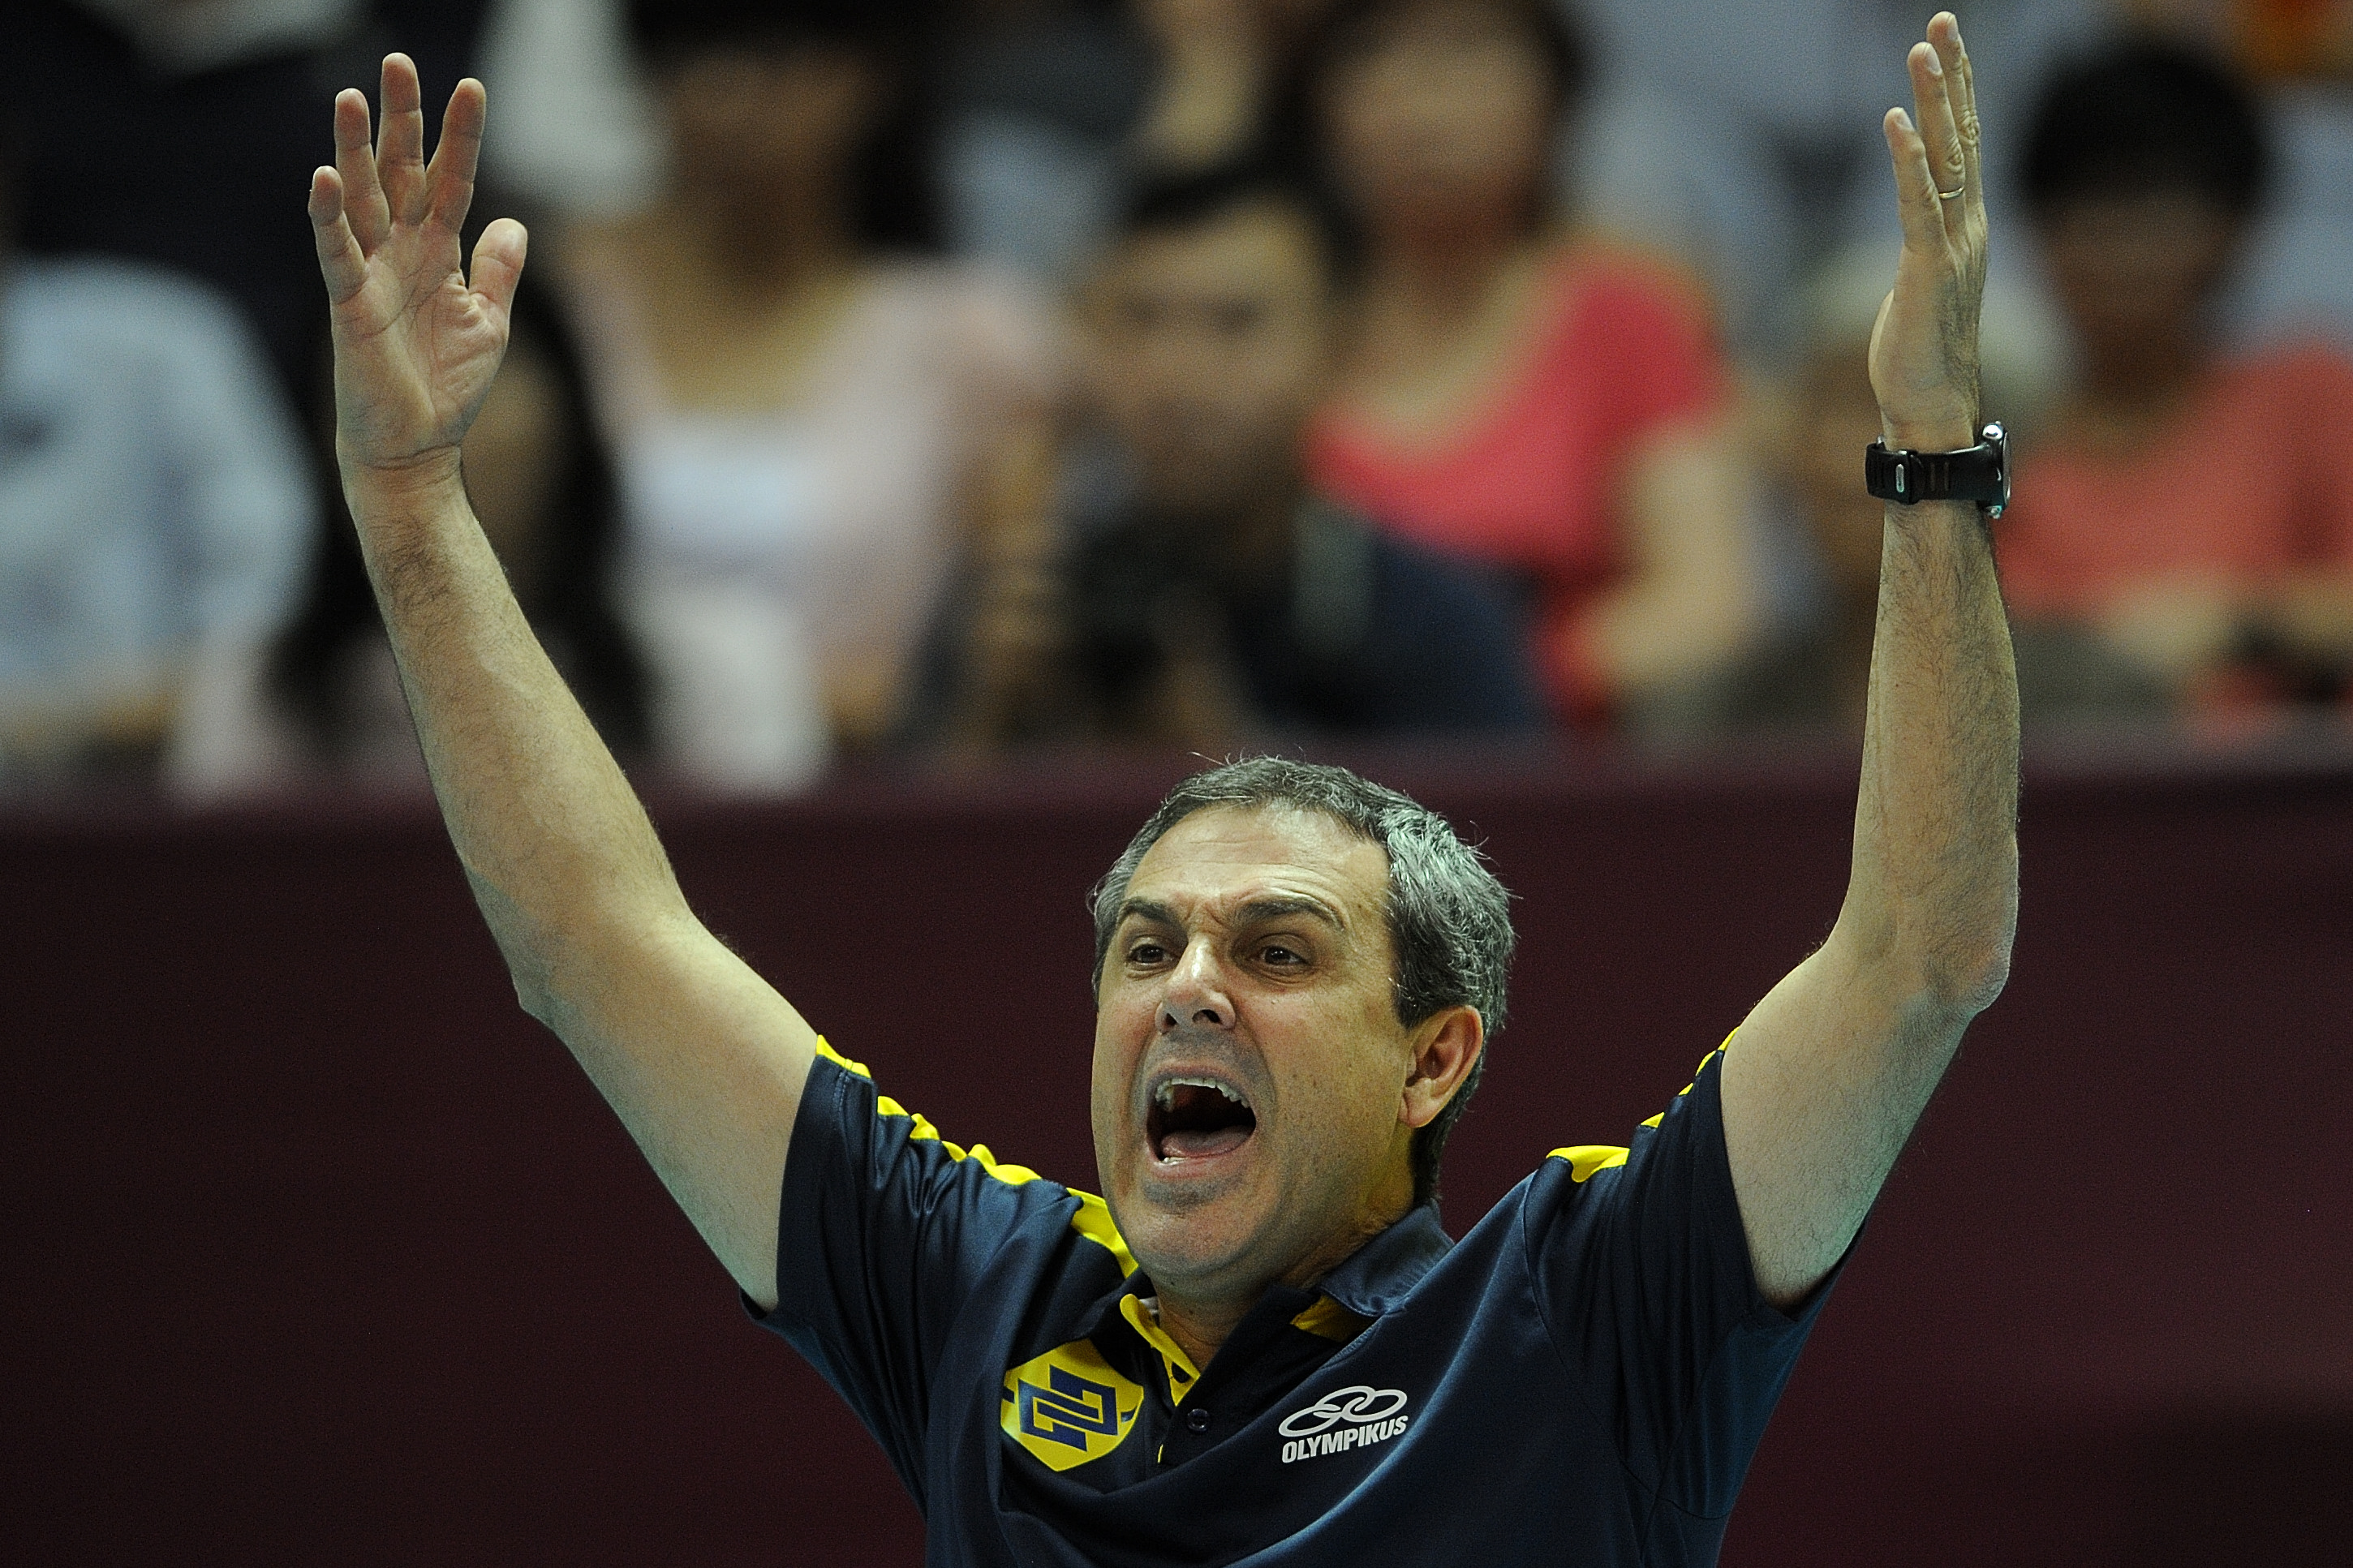 Head coach Jose Roberto Guimaraes raise his arm to hail for the 3-0 victory against Thailand